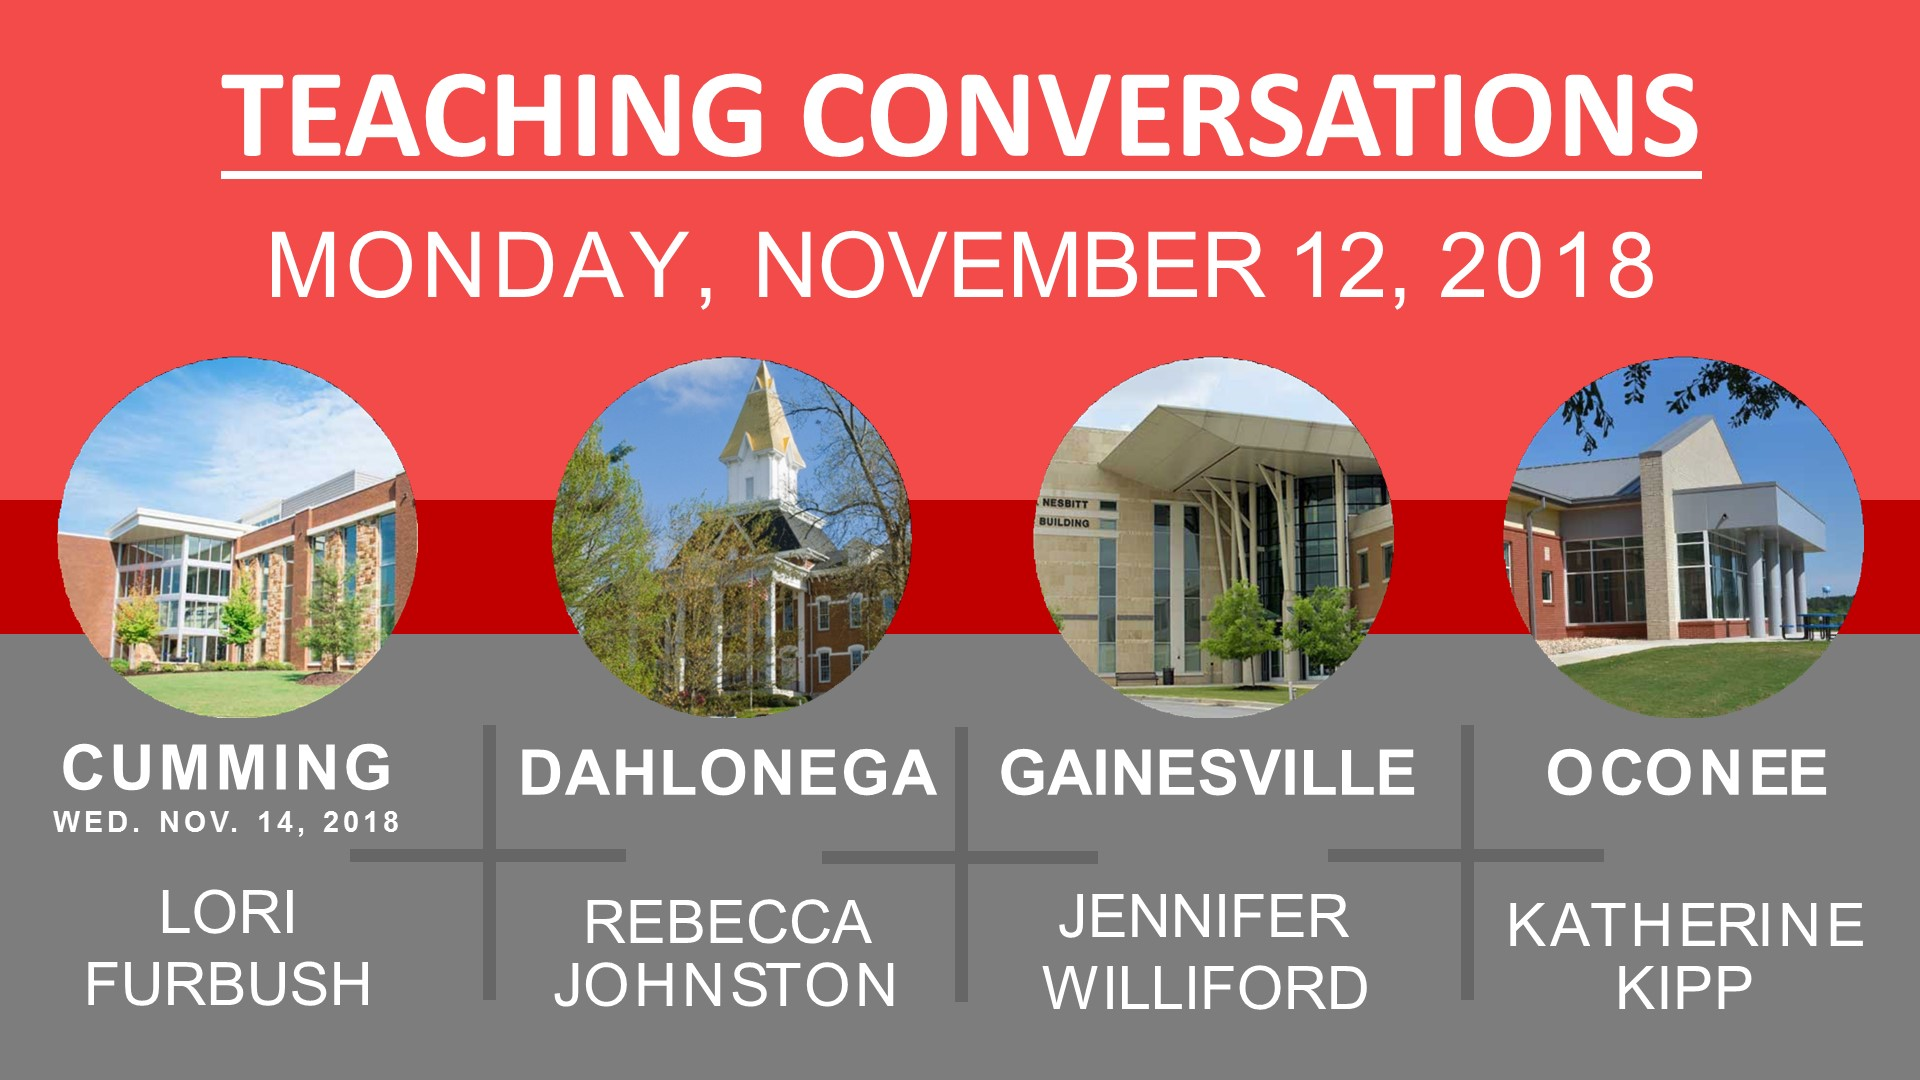 Teaching Conversations information for Cumming, Dahlonega, Gainesville, and Oconee campuses.